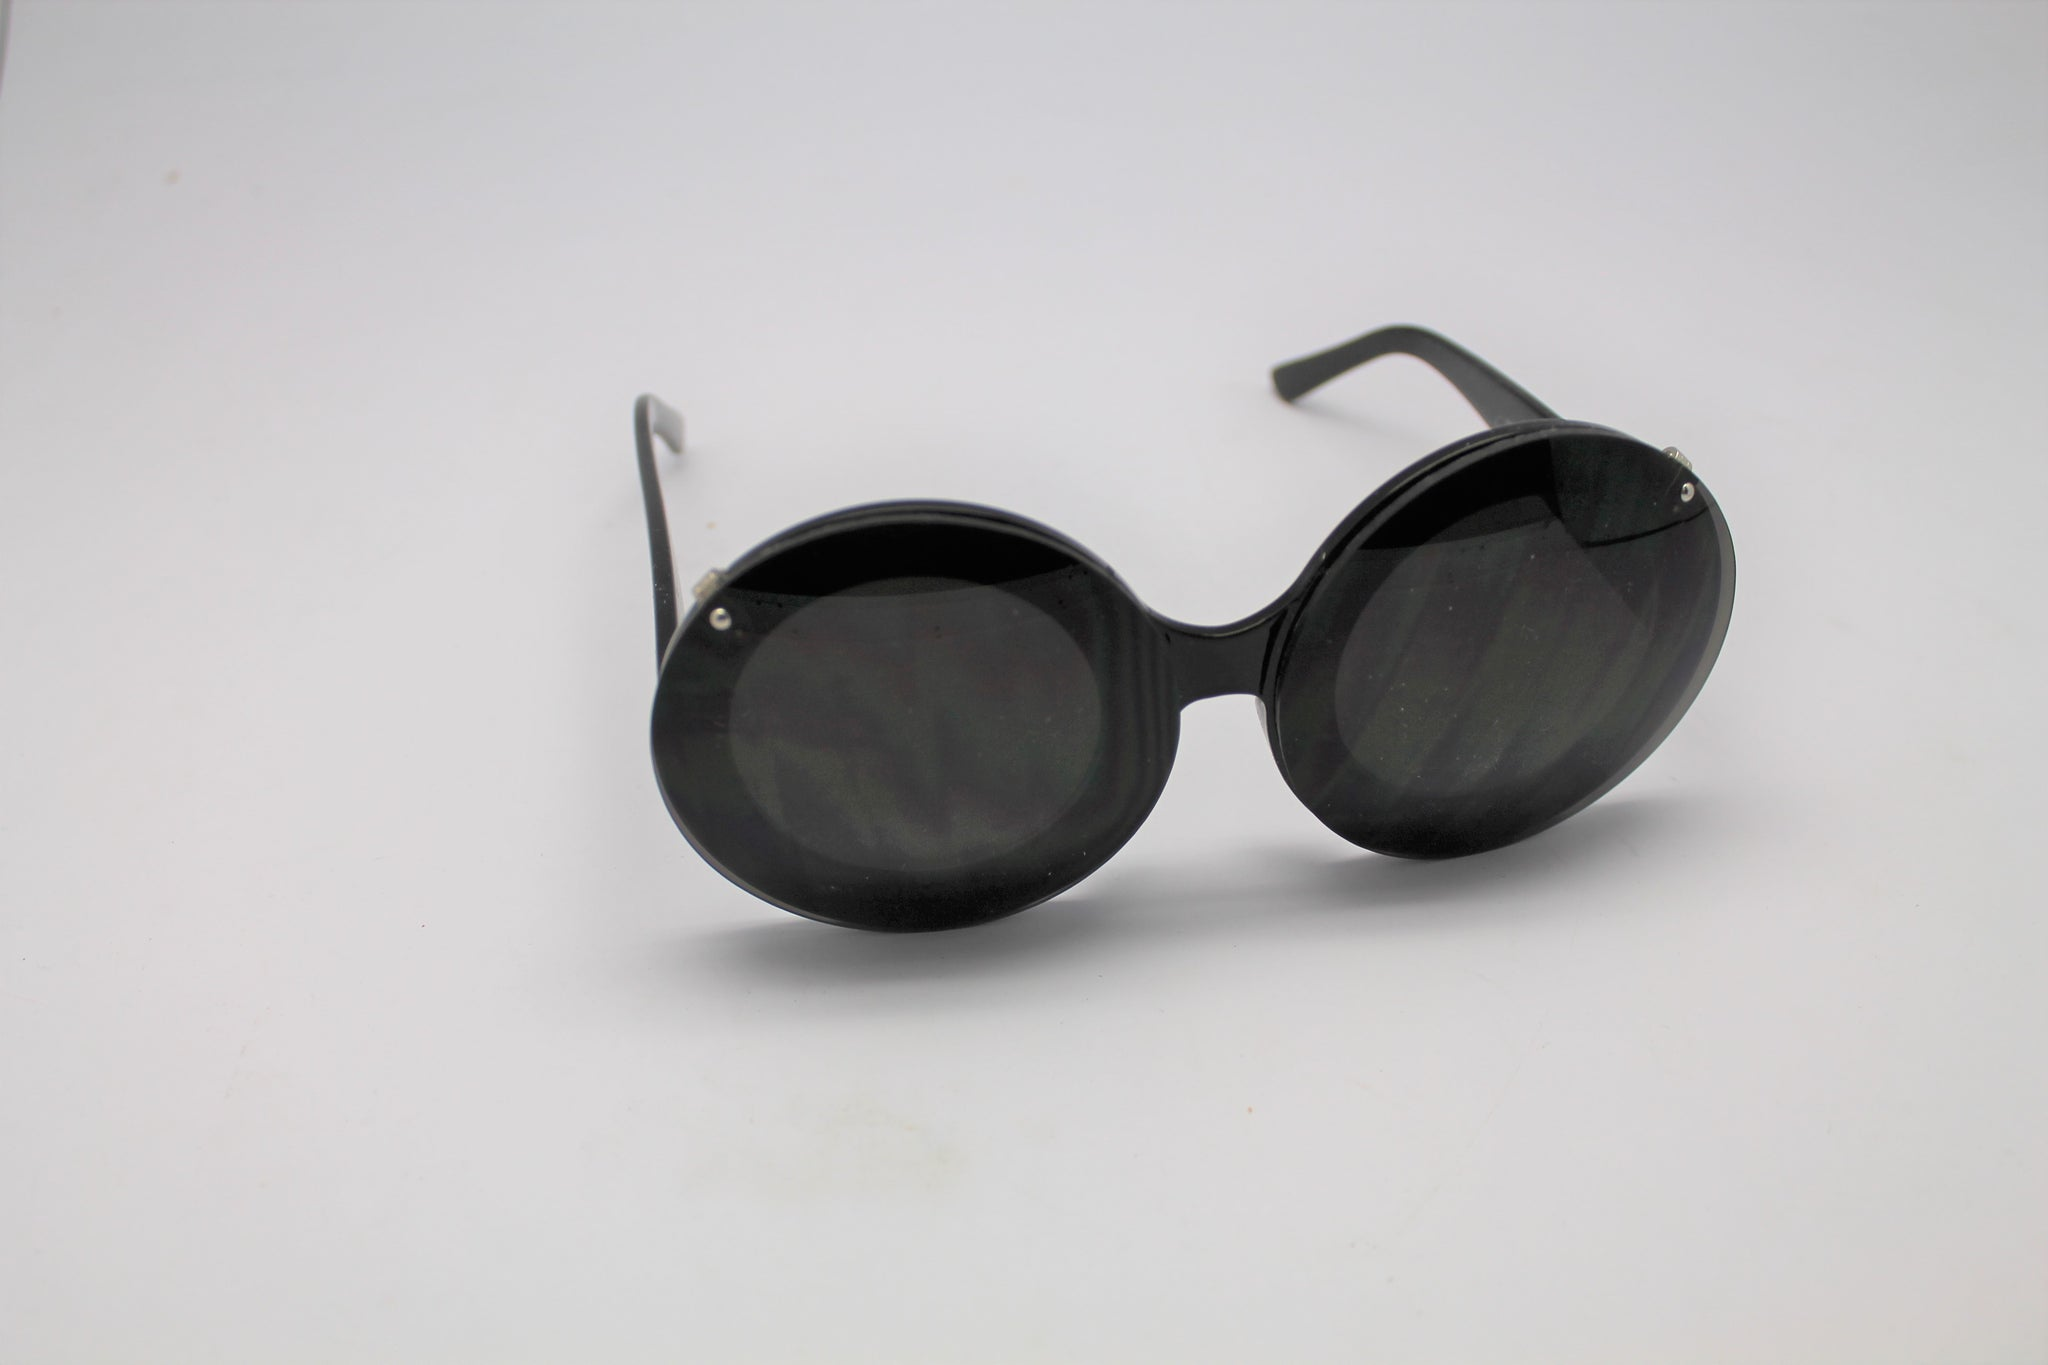 46ace9ca234 ... Clear lenses · Lady gaga Mickey Mouse Flip Retro Paparazzi Sunglasses  Black Frames